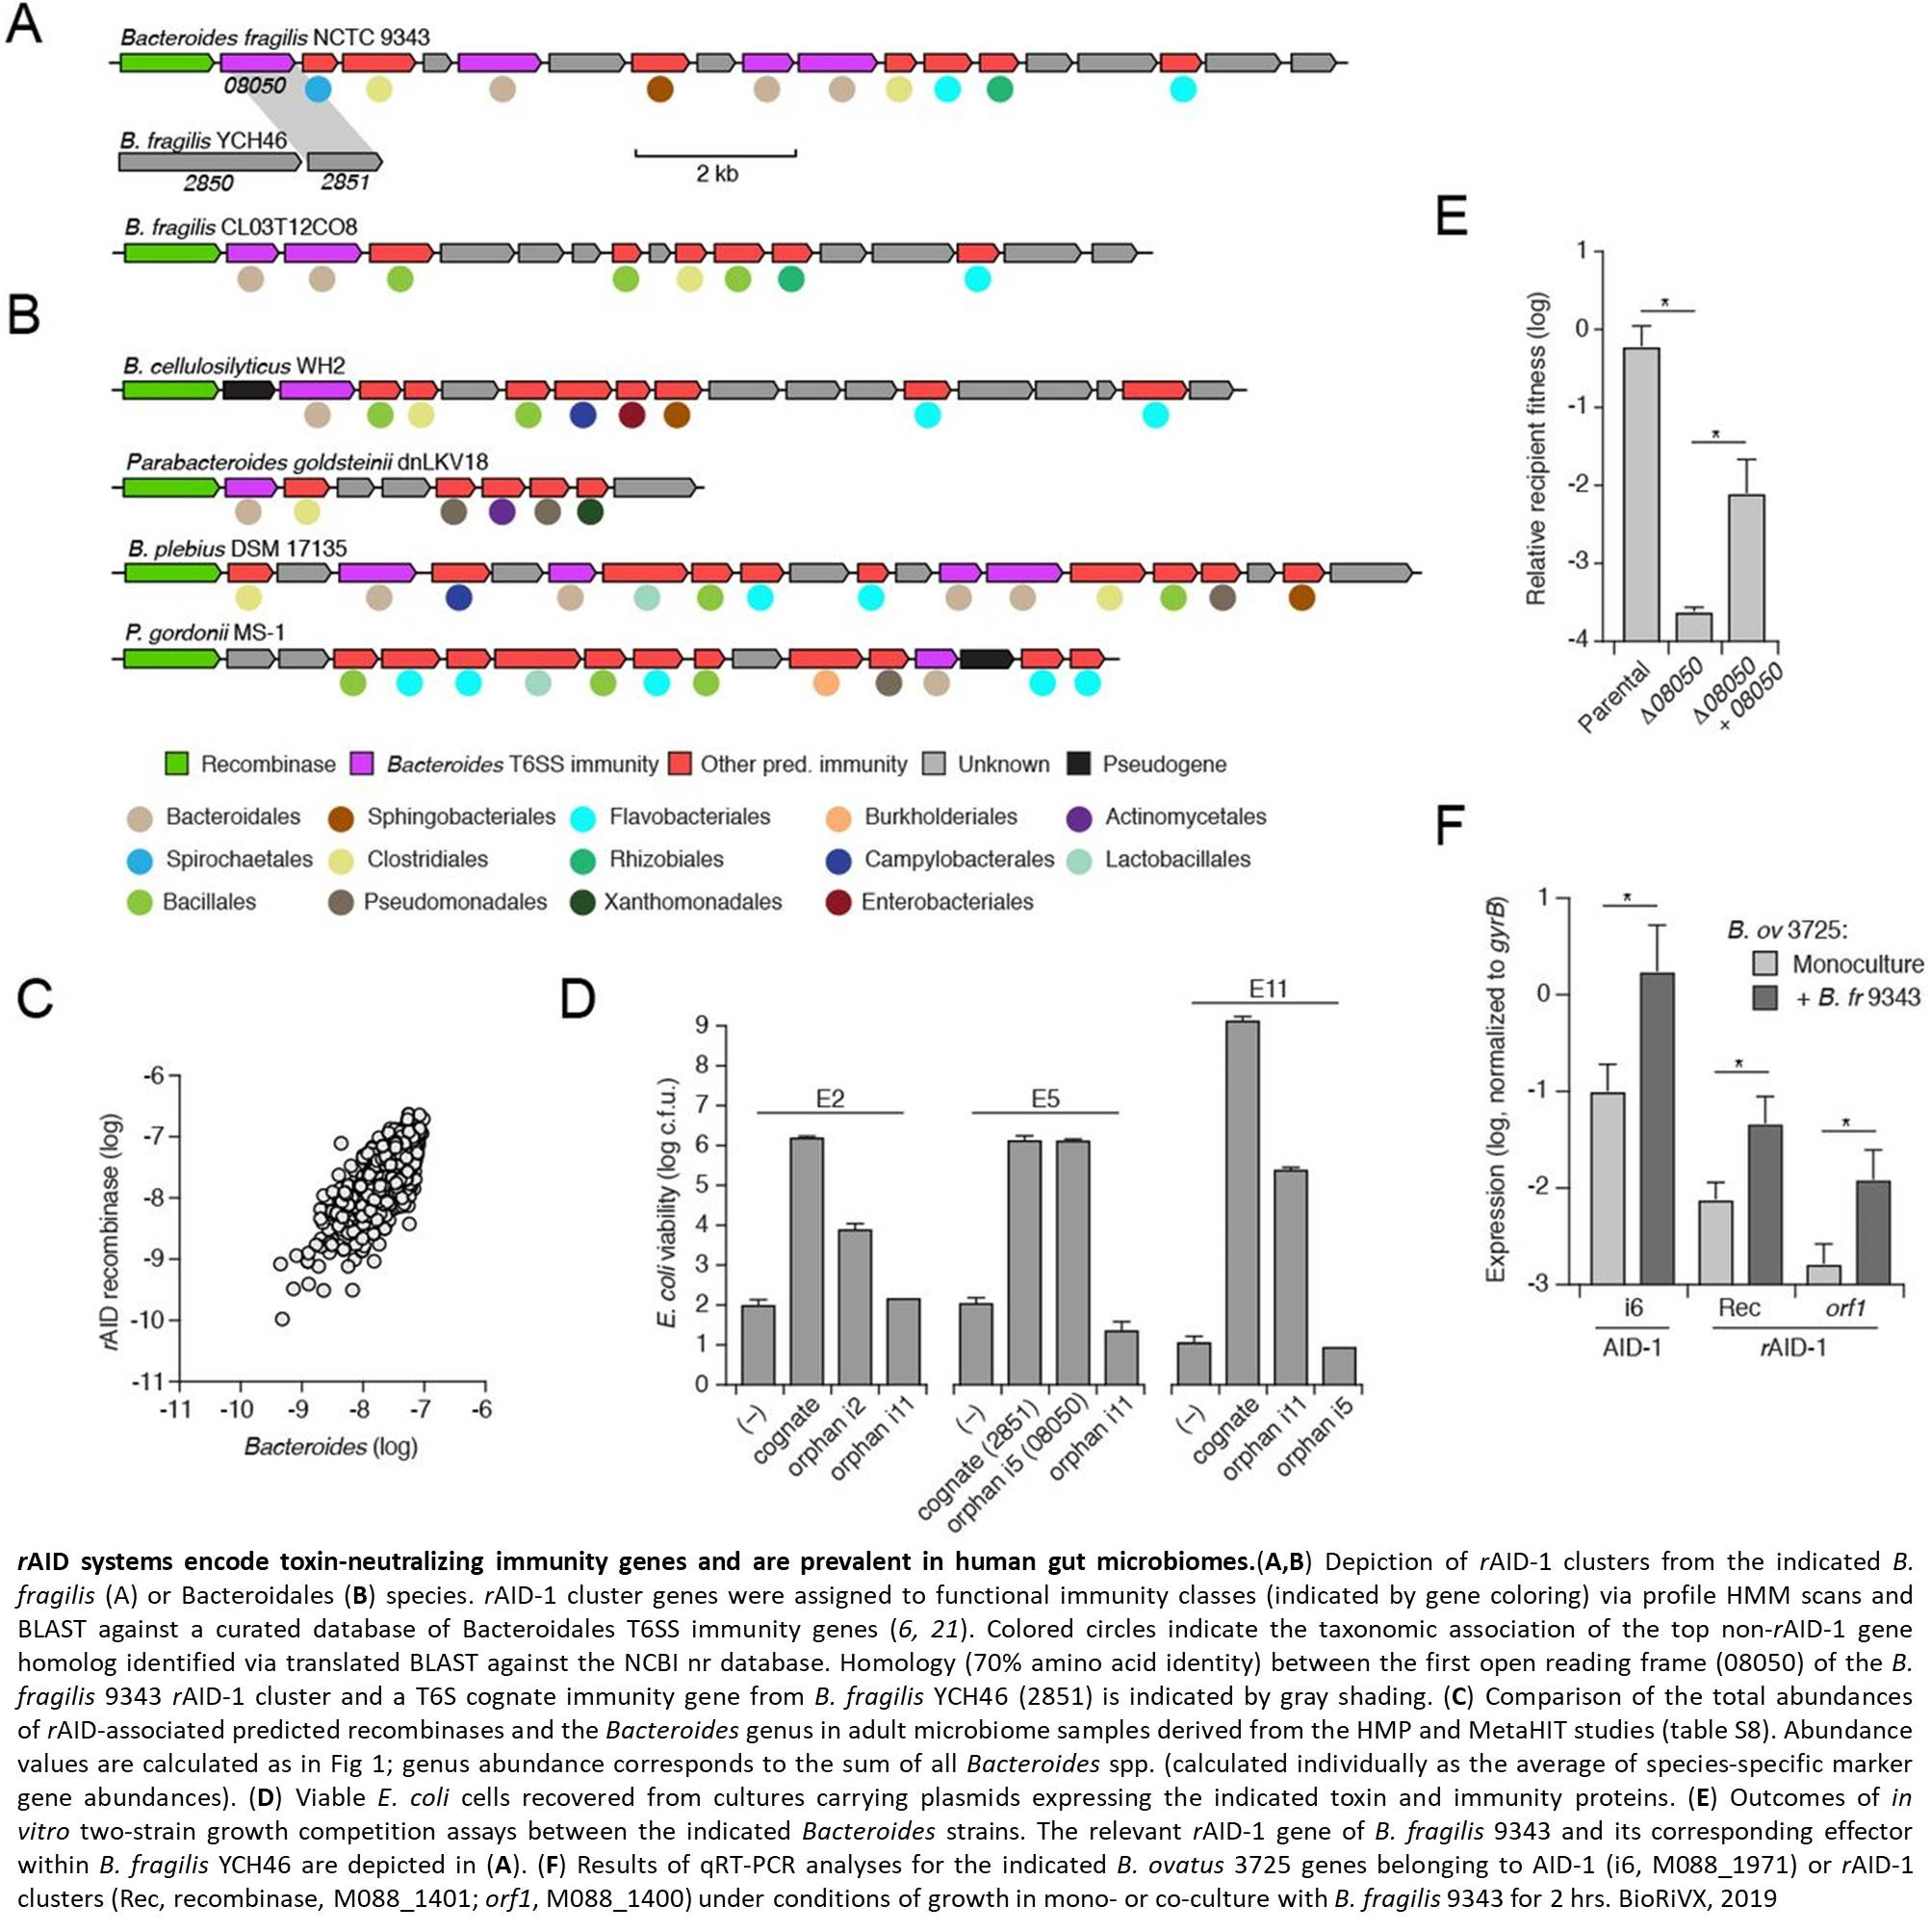 Immune gene clusters protect the bacteria against toxic attack by the rivals in the microbiome